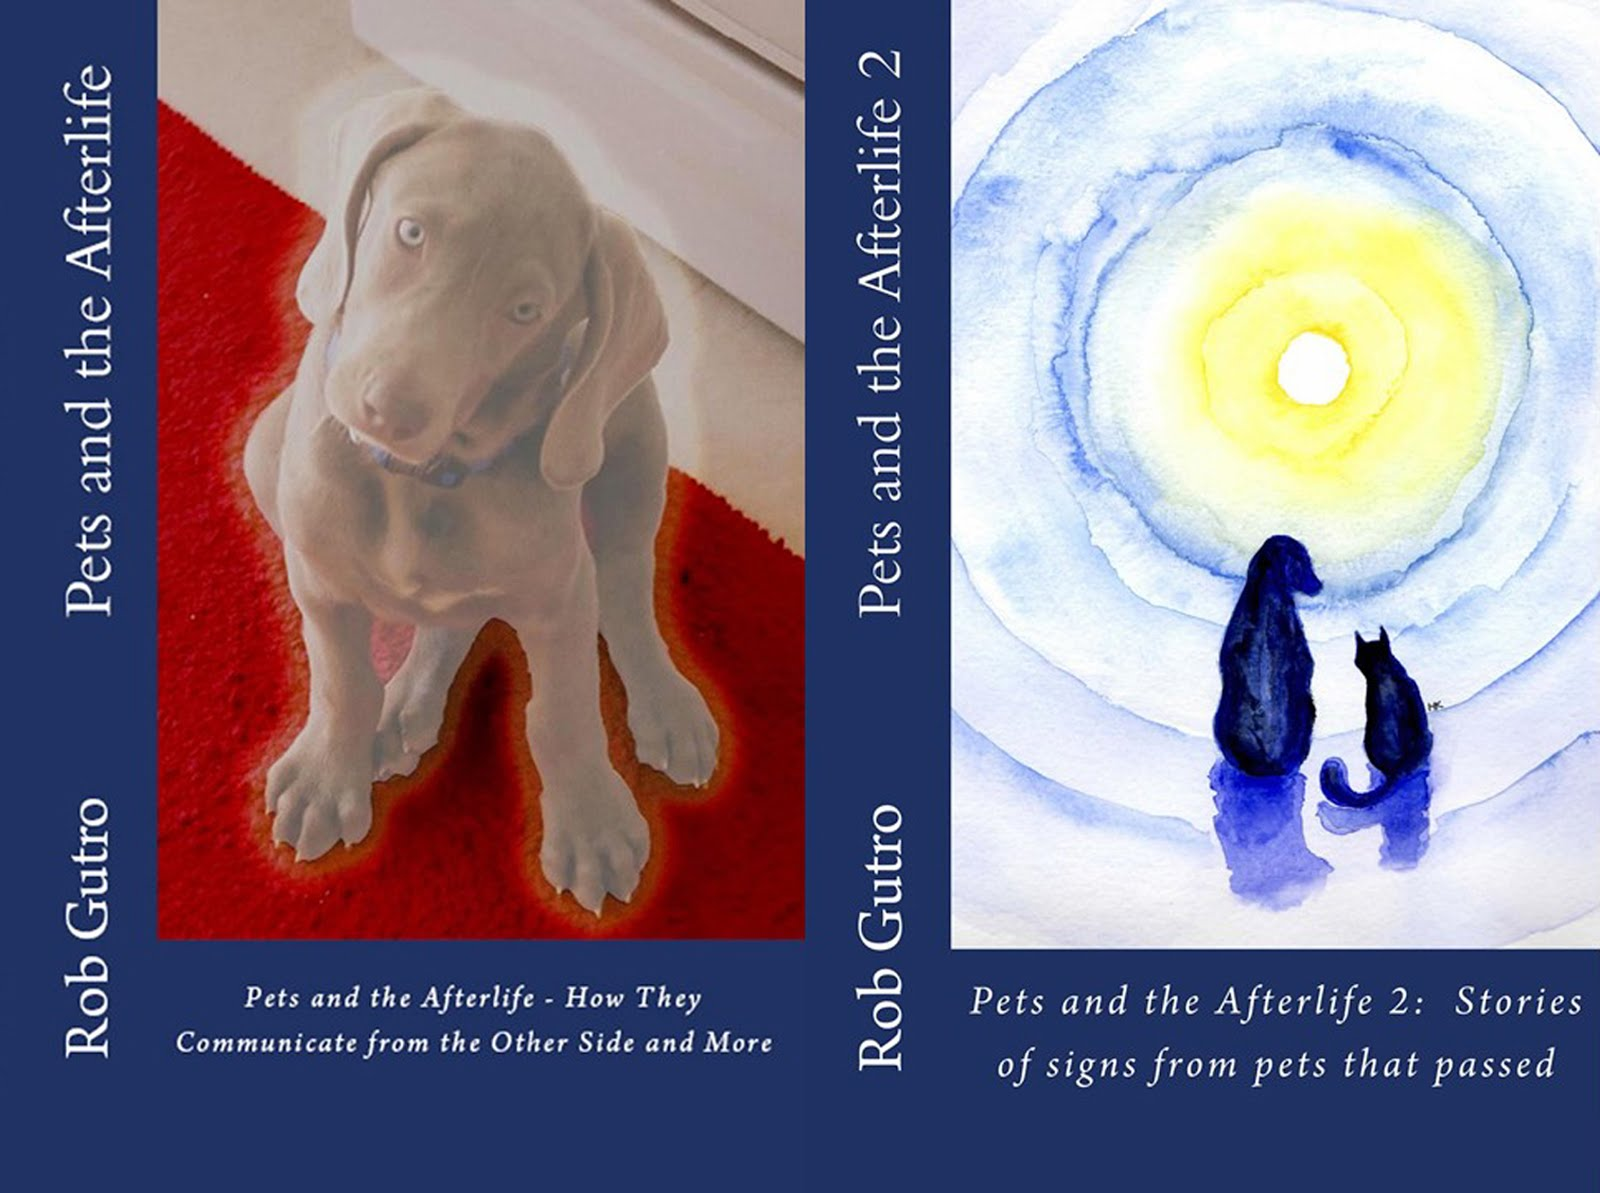 Rob's Pets and the Afterlife Books